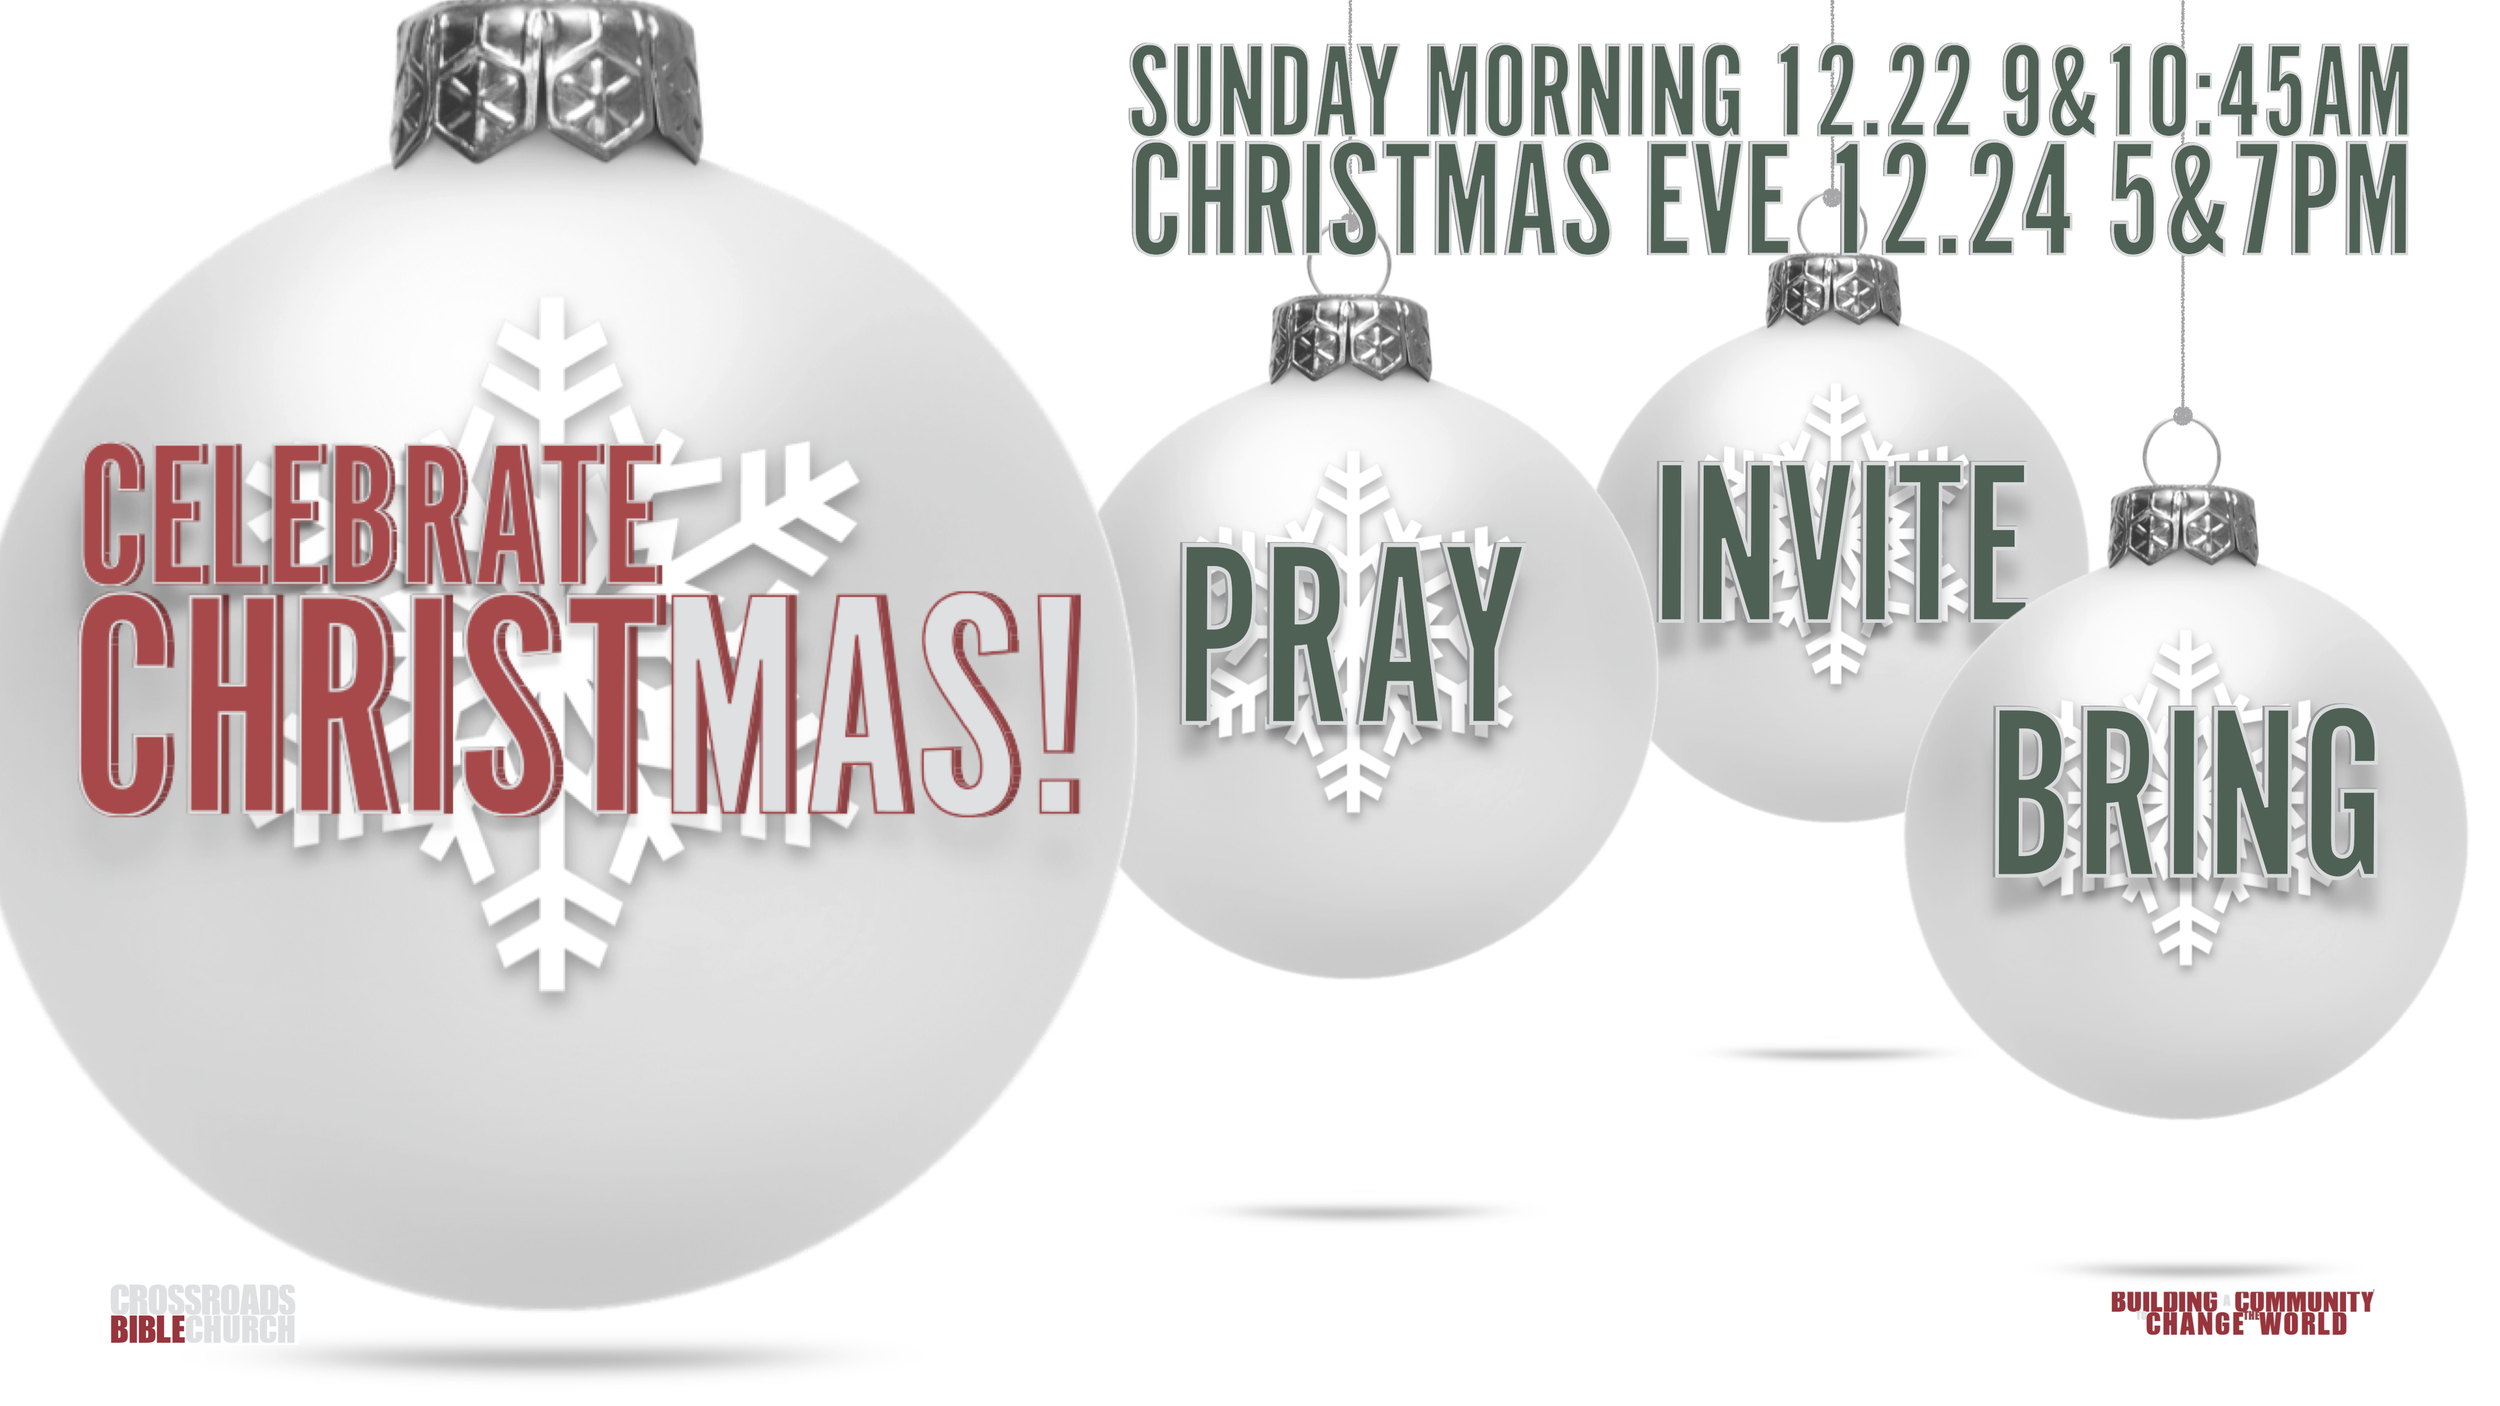 131225 CBC Christmas Pray Invite Bring Screen.jpg